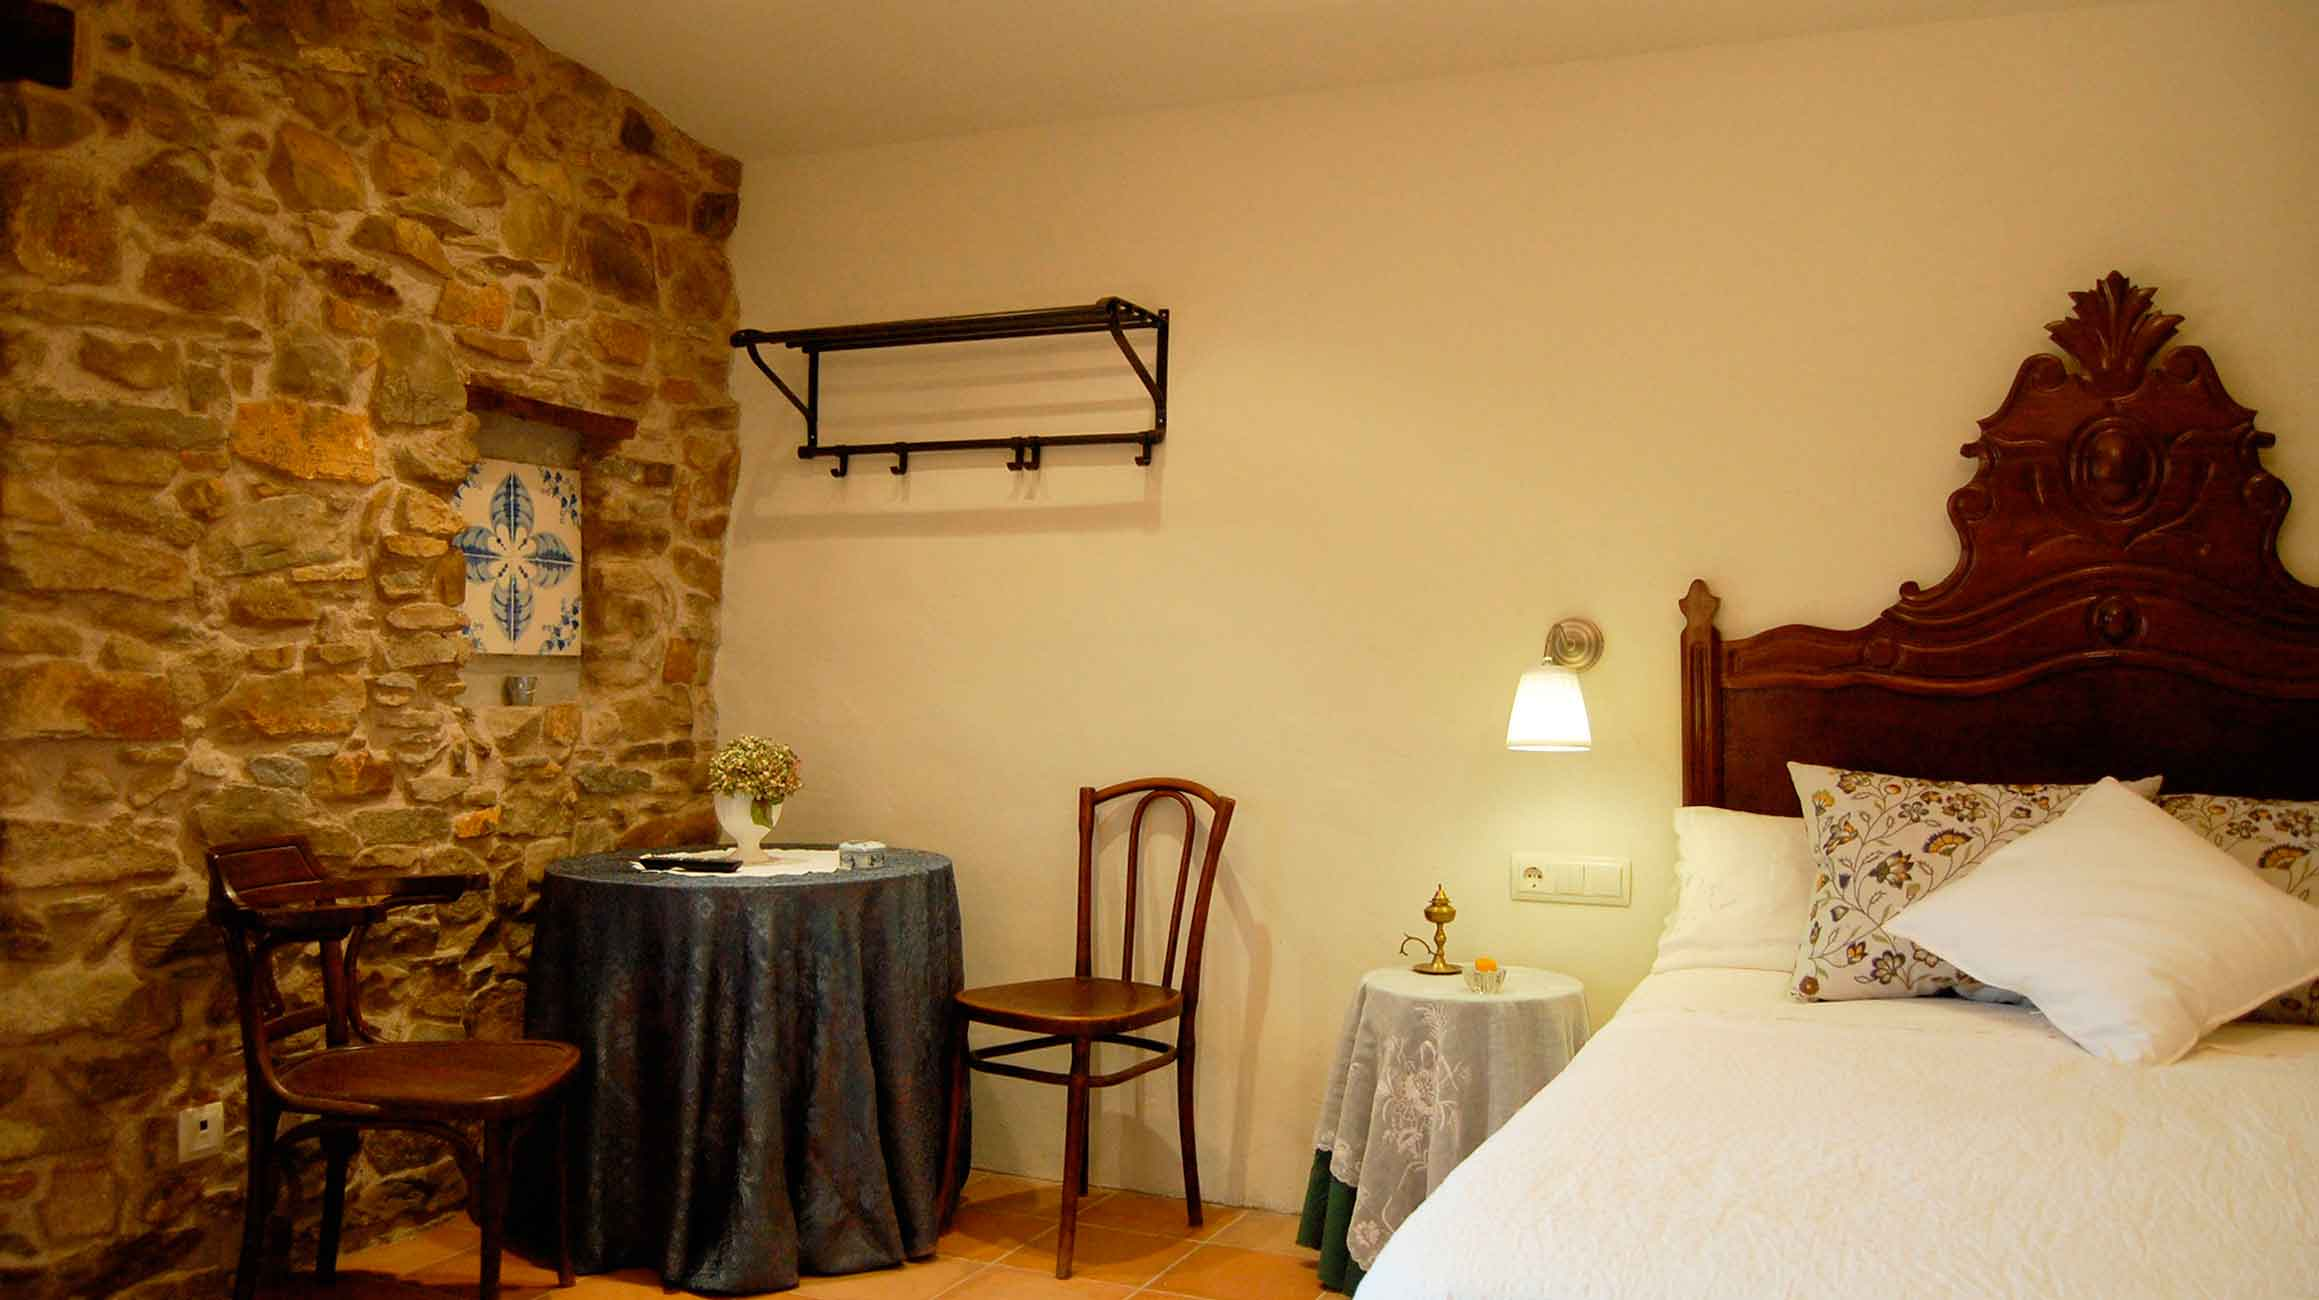 MasRegort Rural tourism Els Bandolers Double room adapted for disabled people located on the first floor.